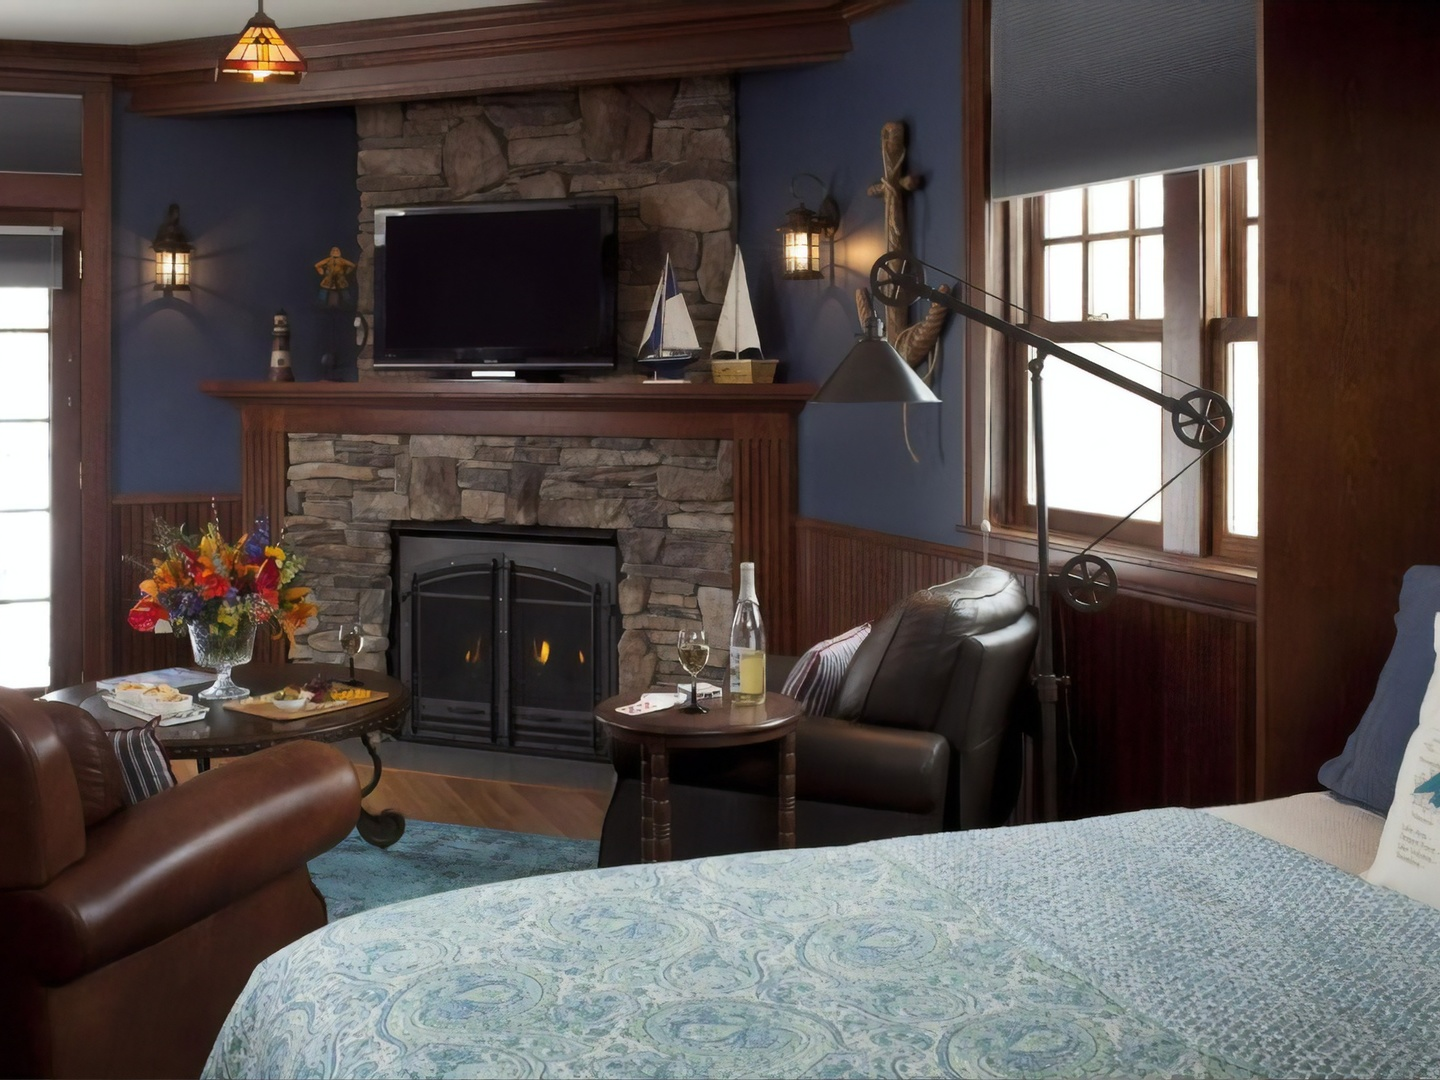 A living room filled with furniture and a large window at A G Thomson House Bed and Breakfast.